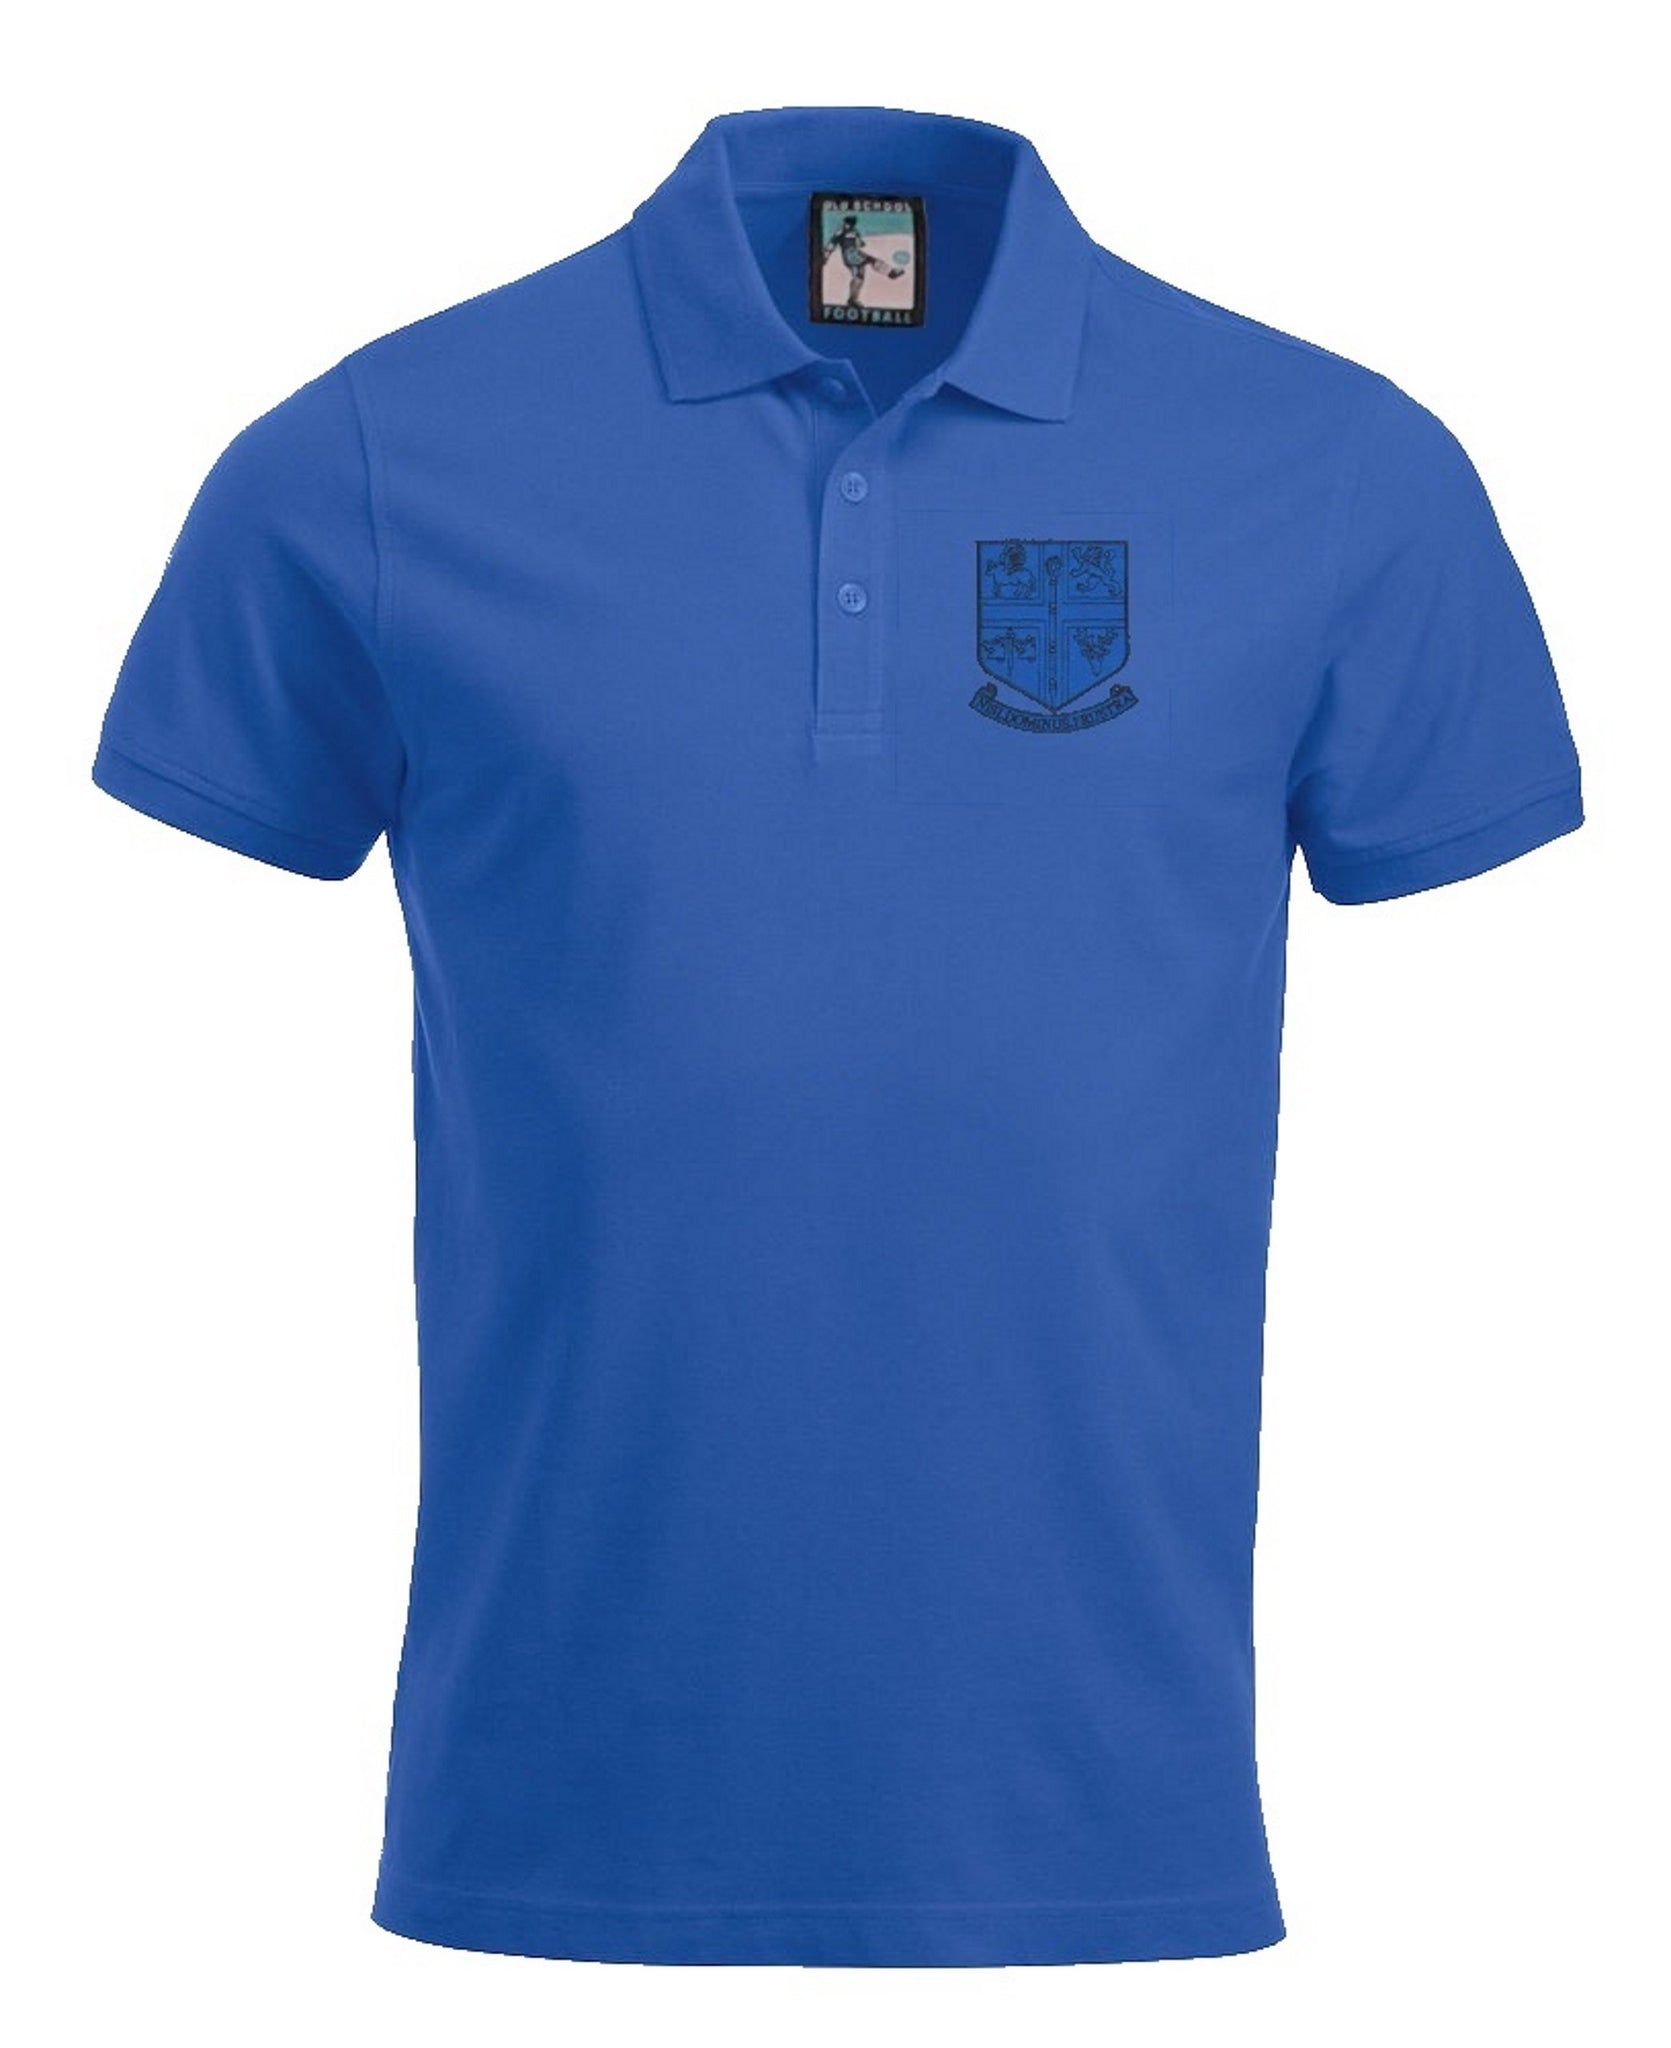 Chelsea Retro Football Polo Shirt 1905 - Polo